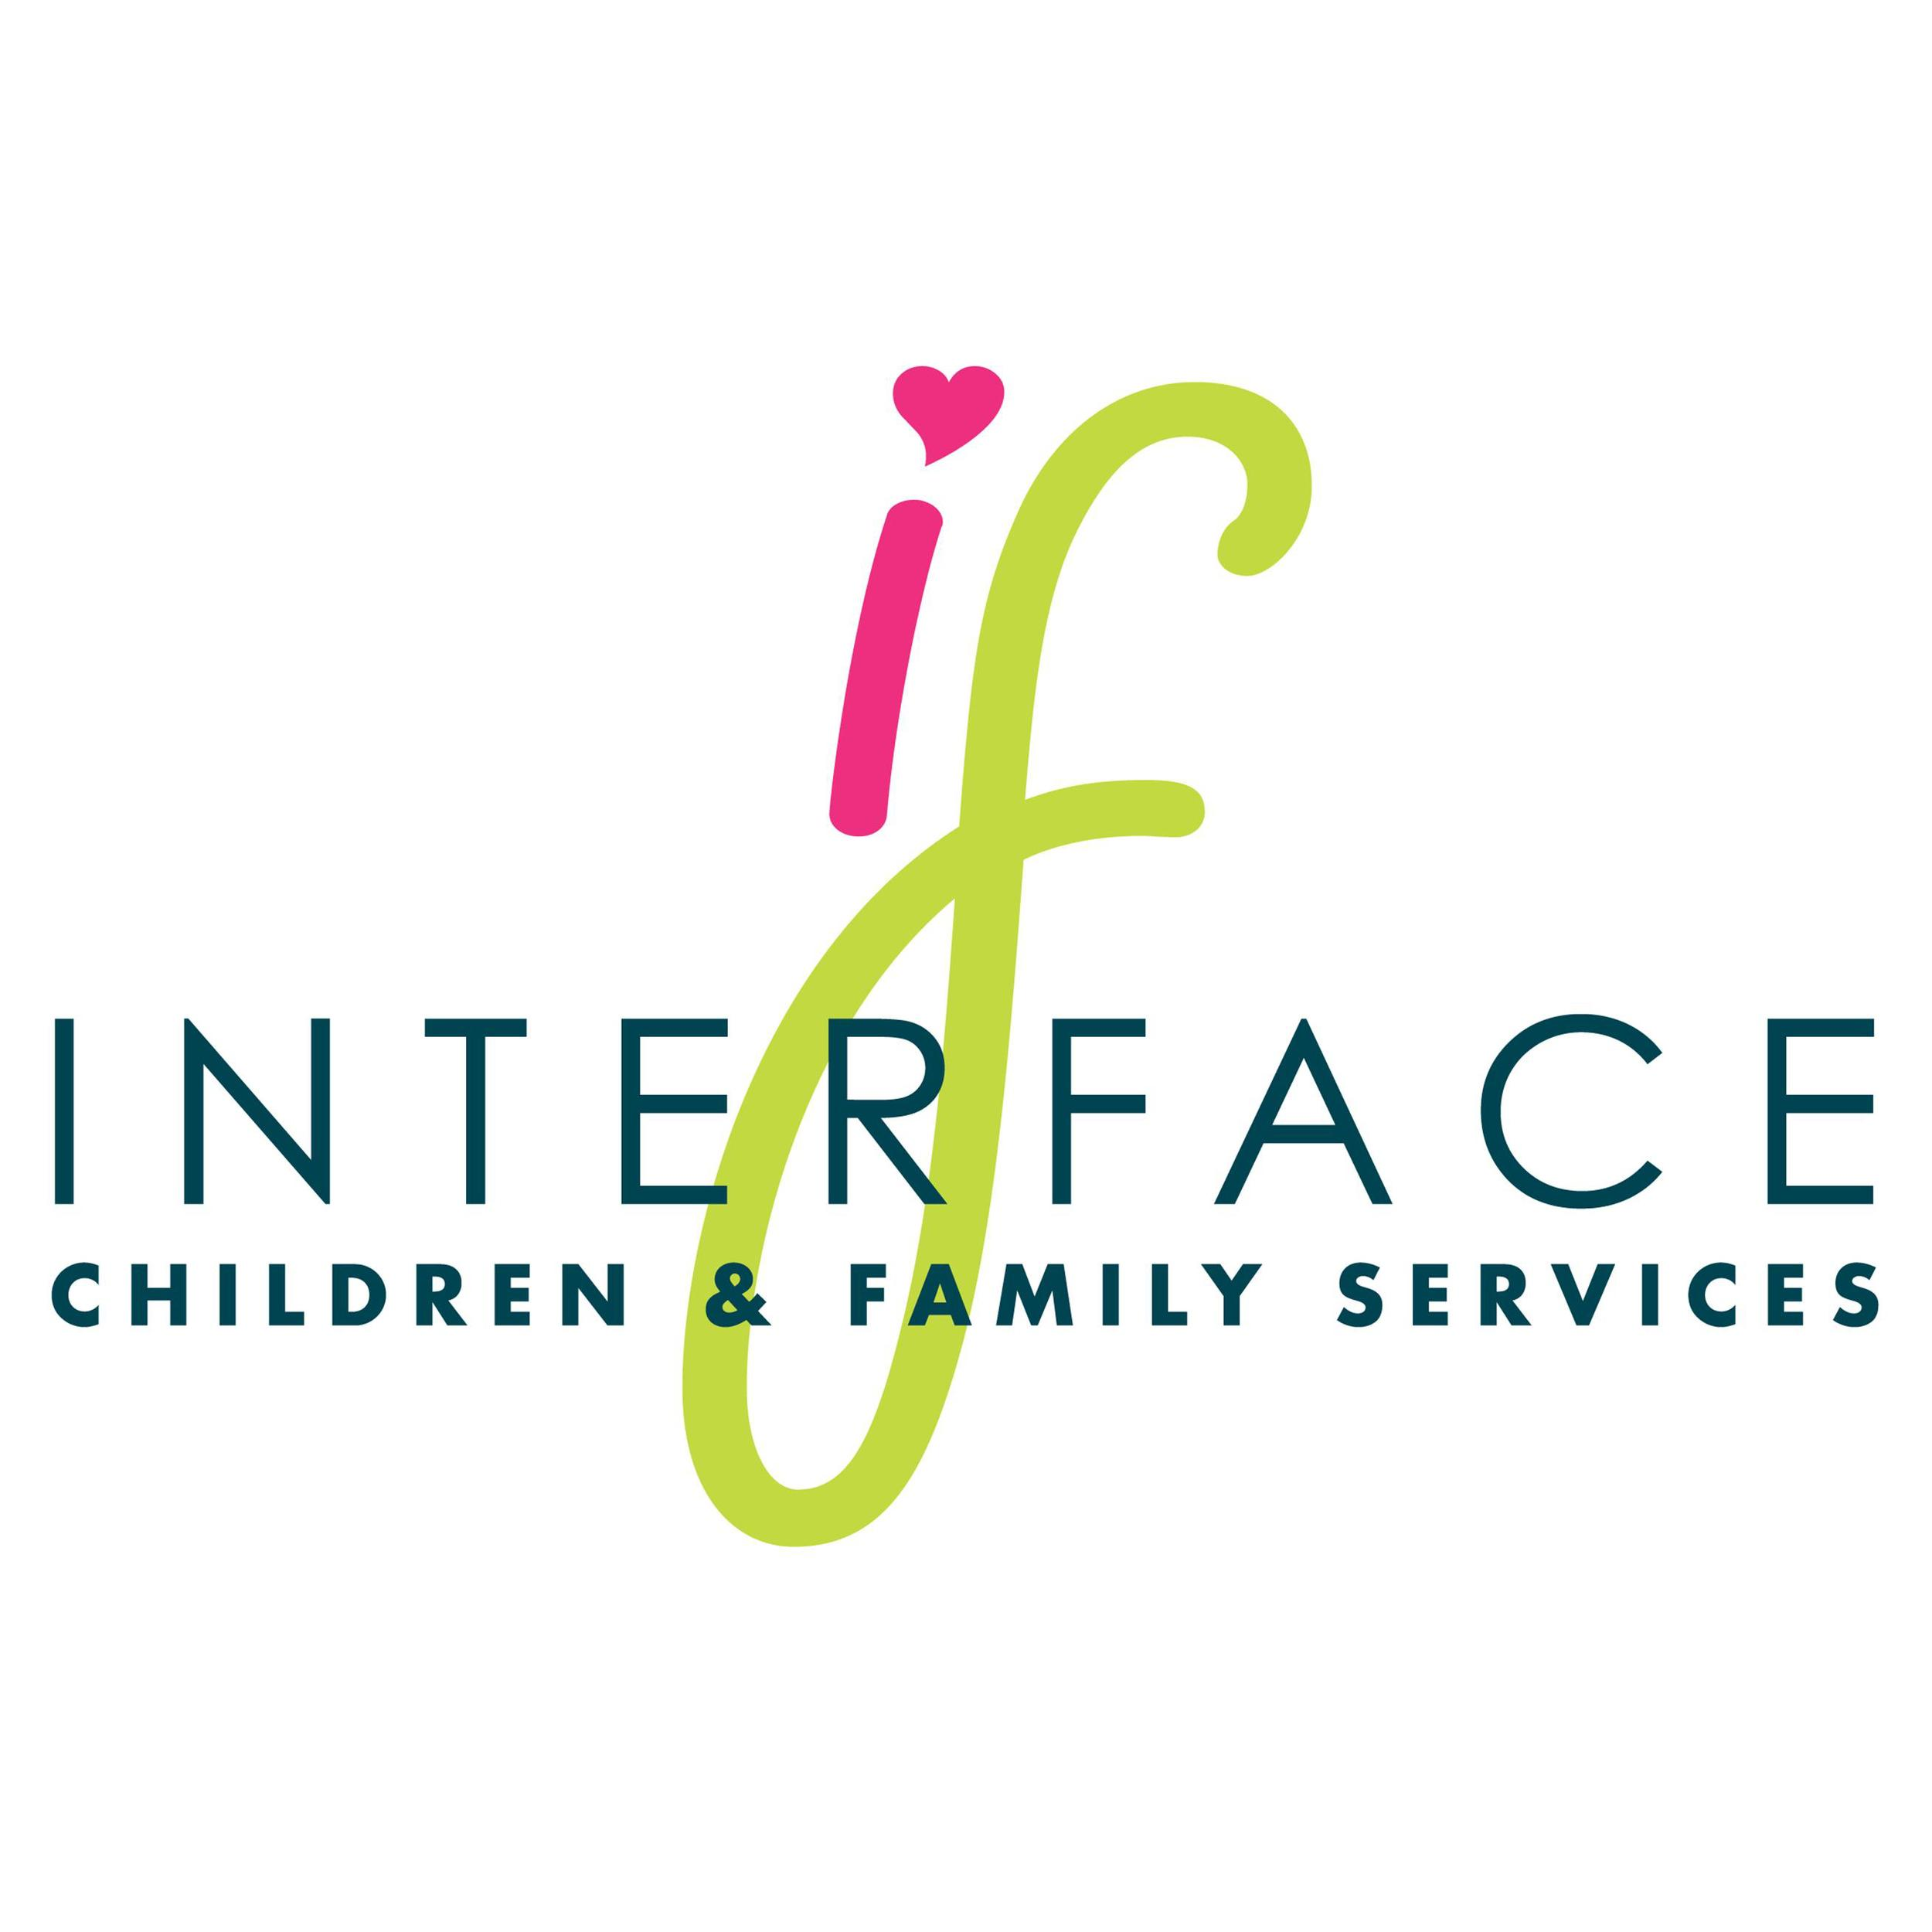 Provides outpatient counseling for children, teens, and families; runaway & homeless youth emergency shelter and intervention services; and education programs for abused children, battered women and their children, and families in crisis.   icfs.org